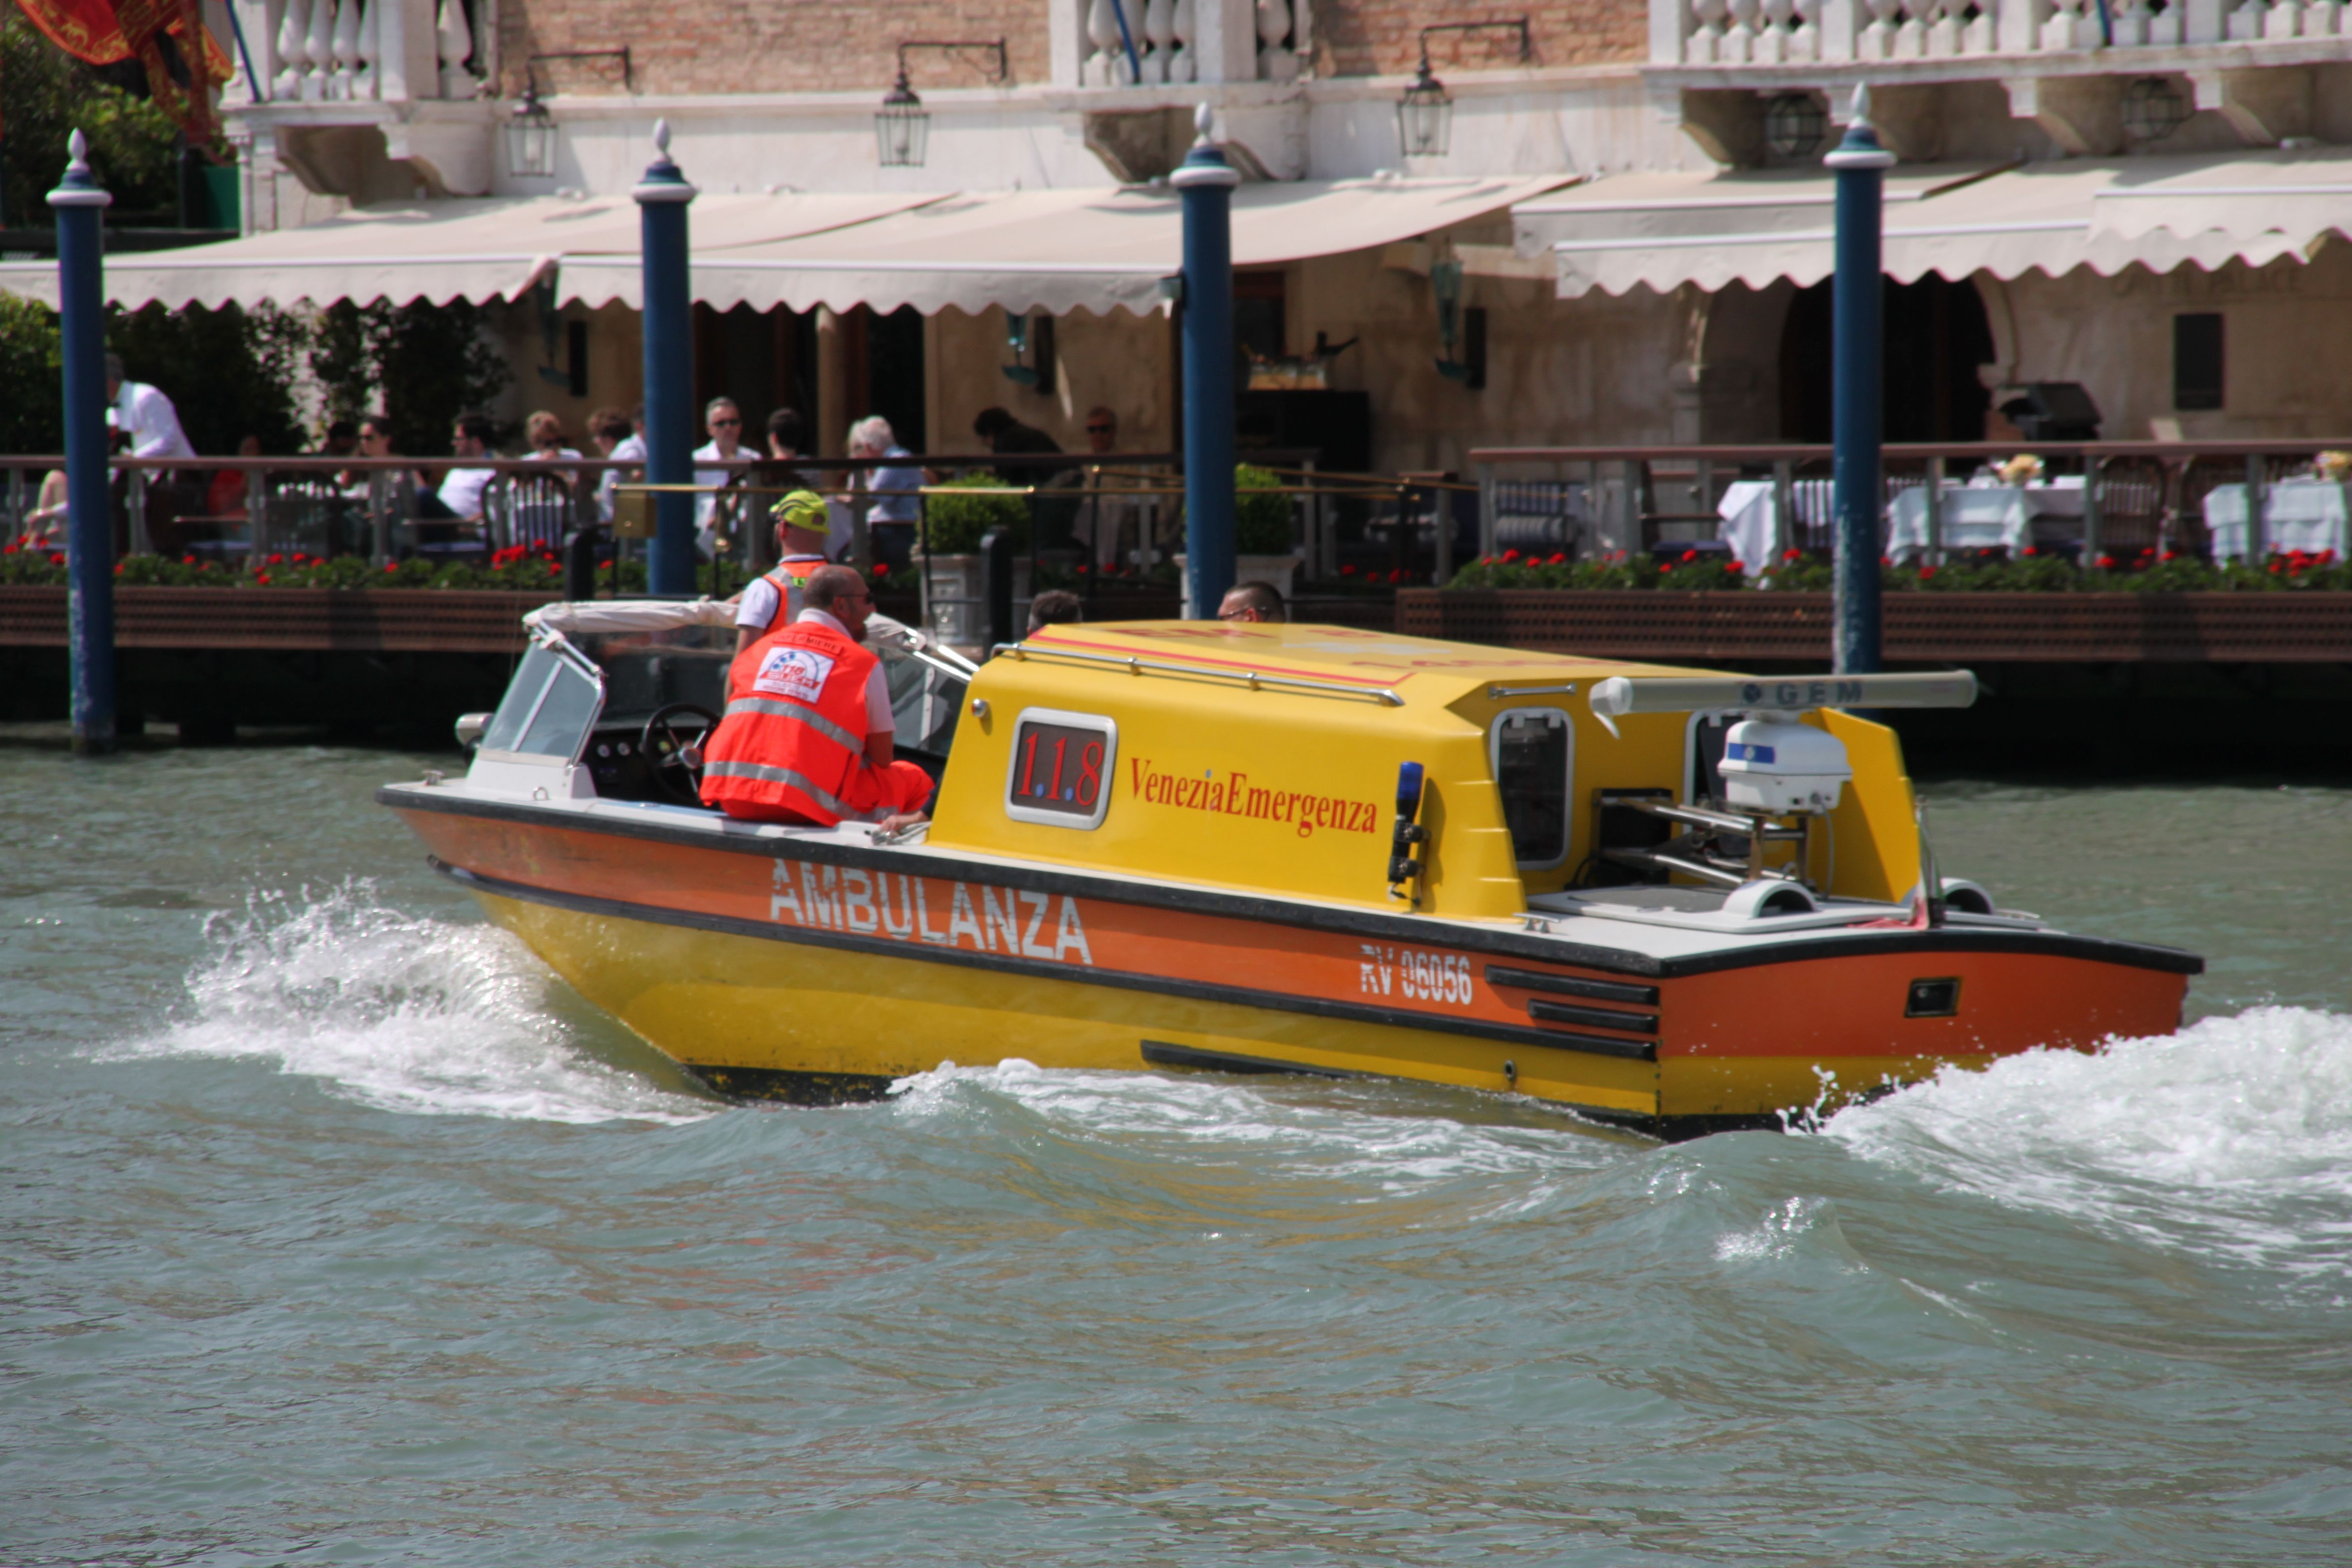 Water ambulances speed through the canals of Venice